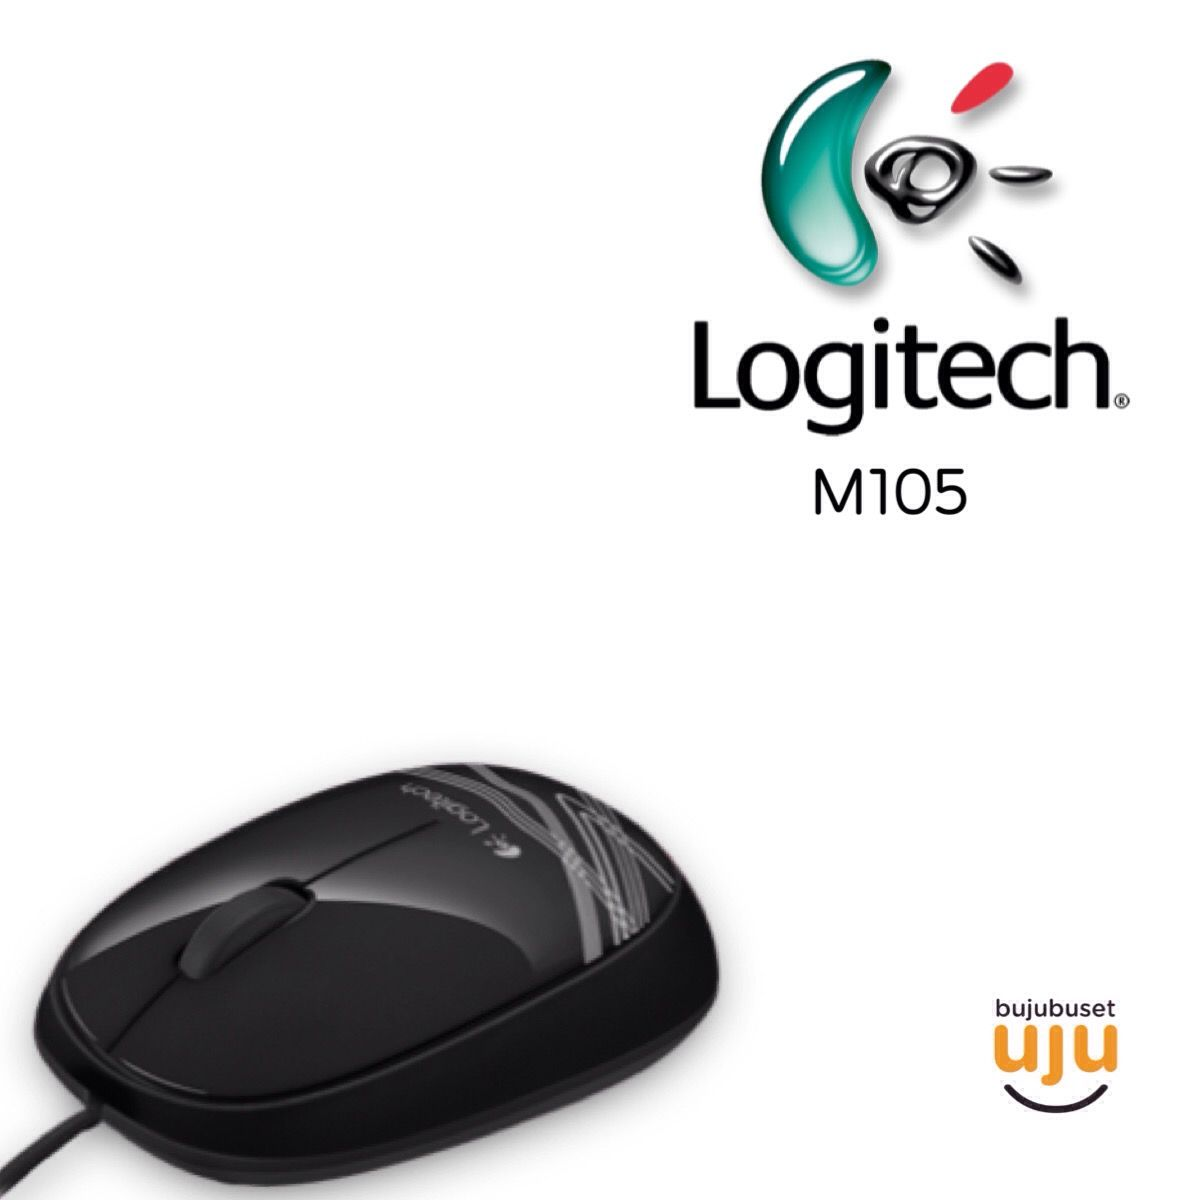 44 Best Logitech Mouse Images On Pinterest Touch And M105 Journals